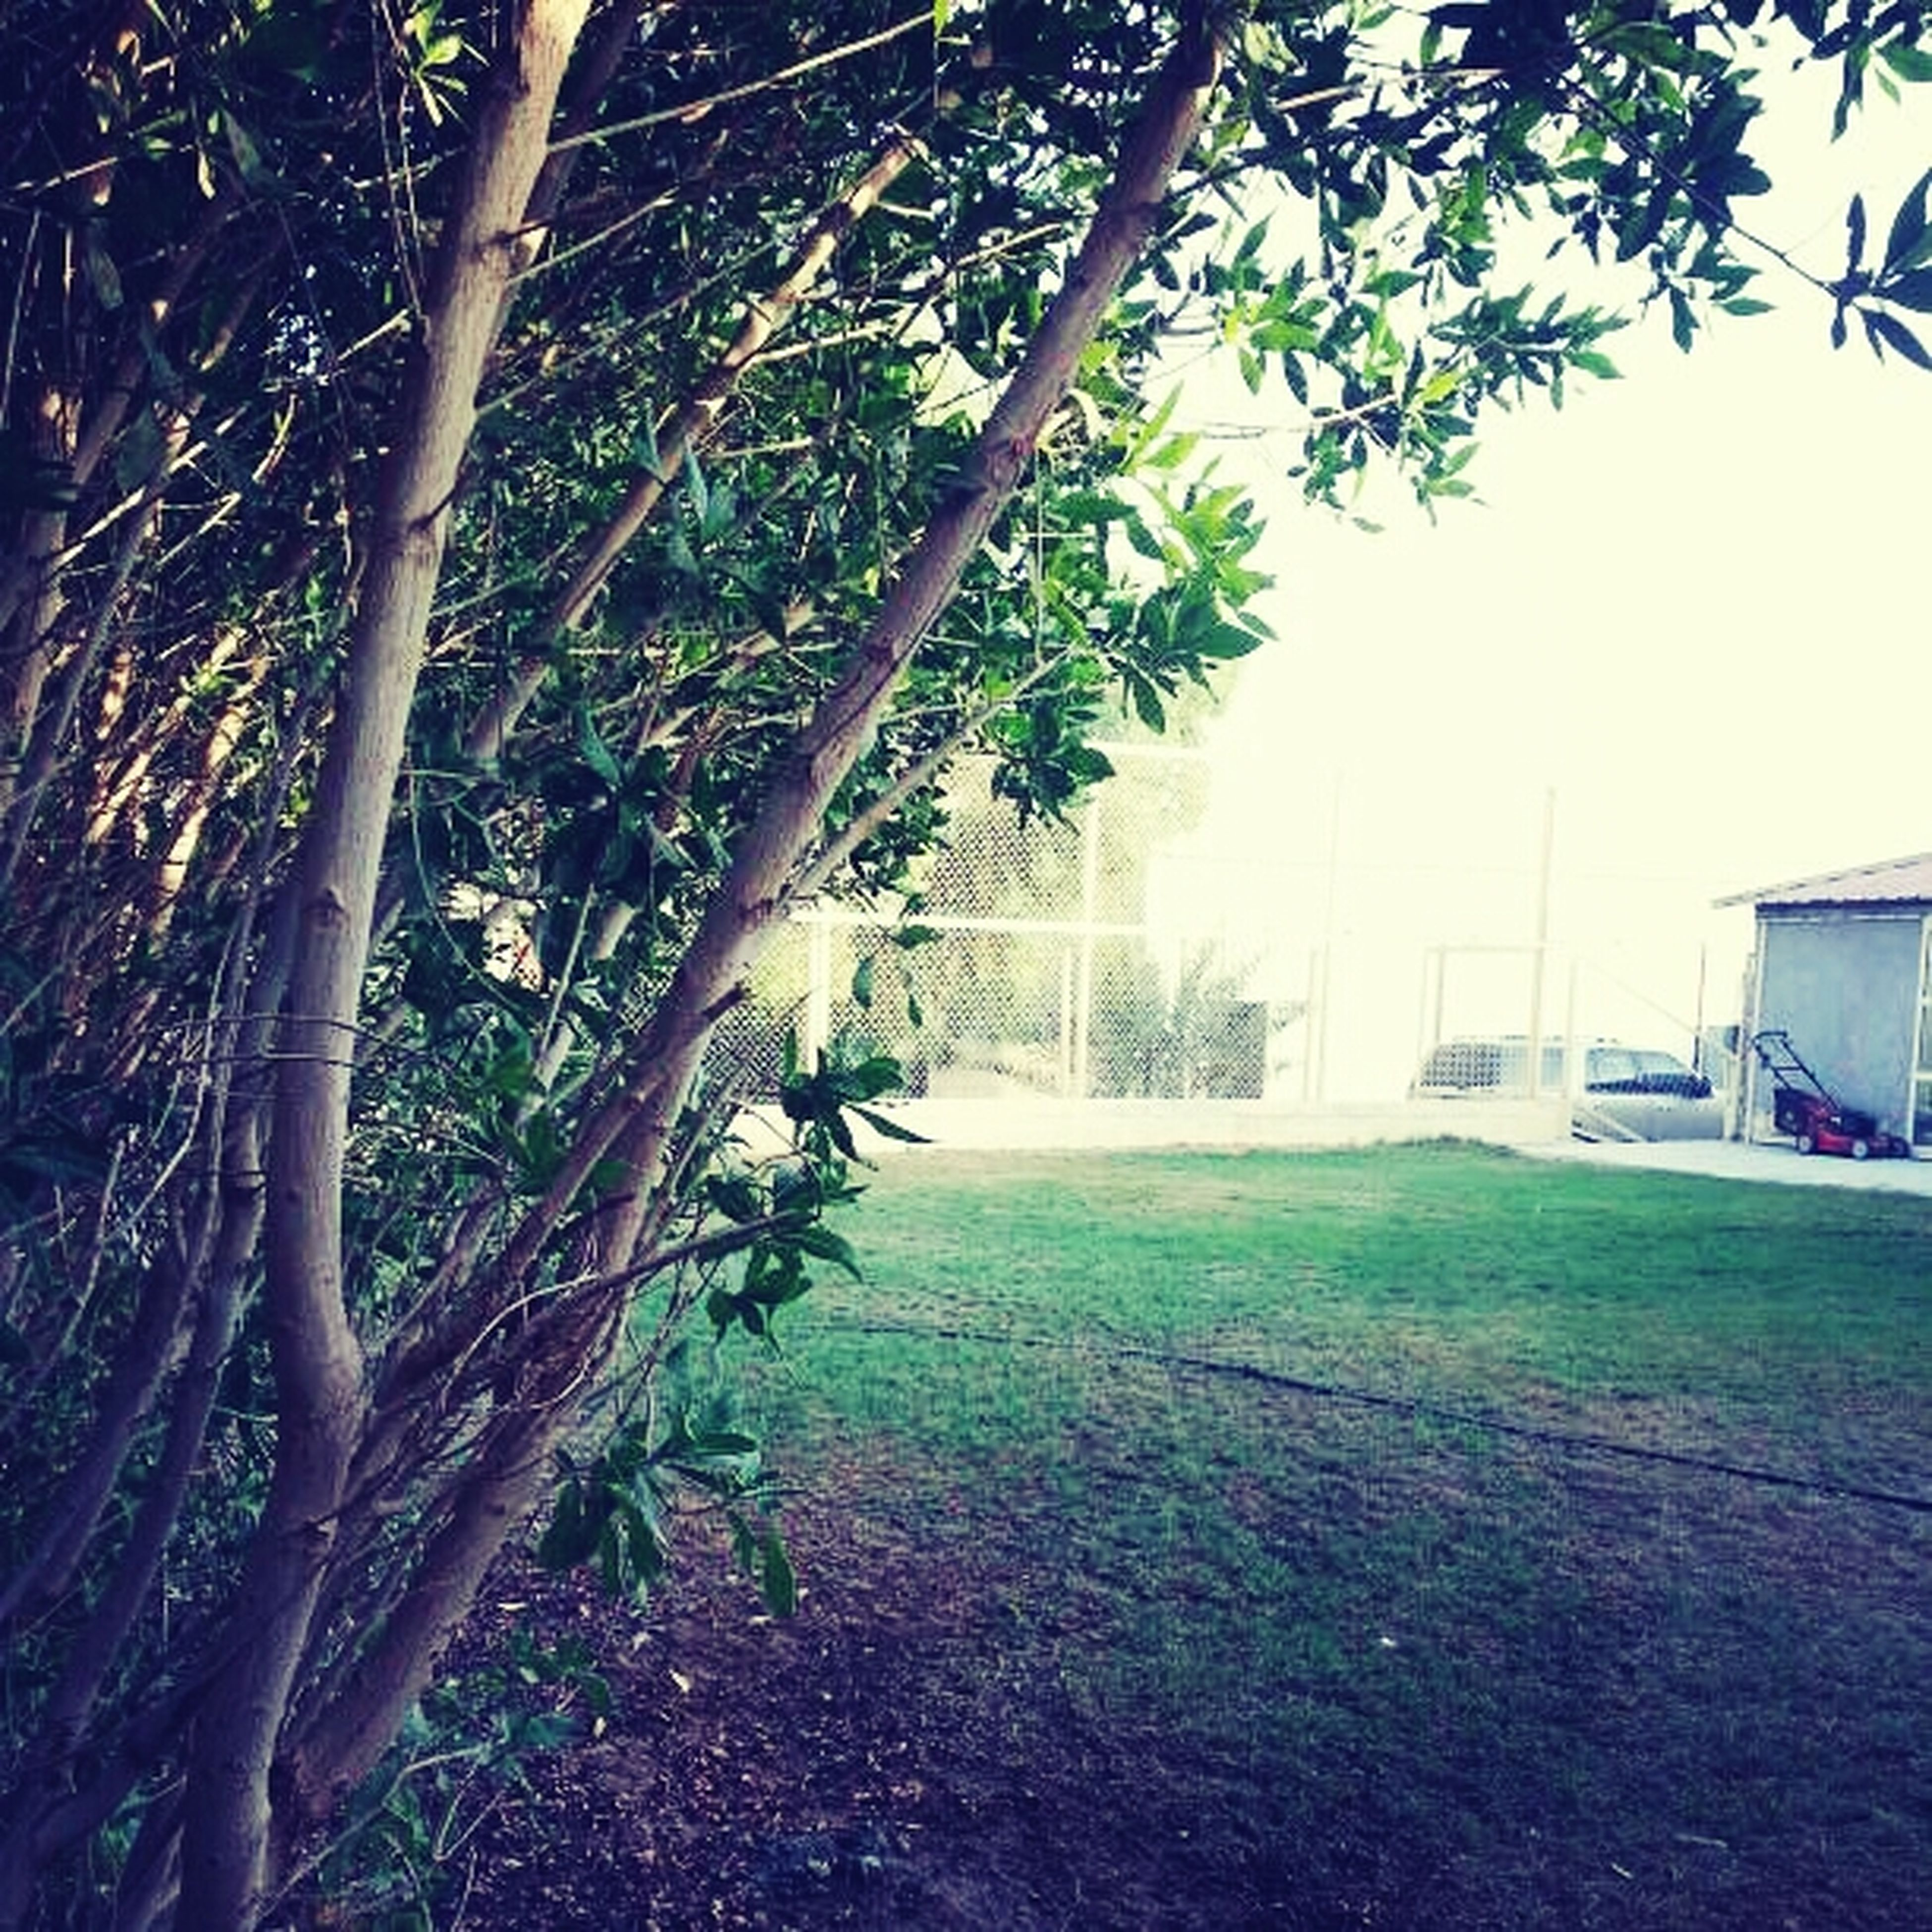 tree, branch, grass, tree trunk, growth, built structure, nature, park - man made space, building exterior, architecture, tranquility, green color, sunlight, day, outdoors, footpath, field, no people, shadow, beauty in nature